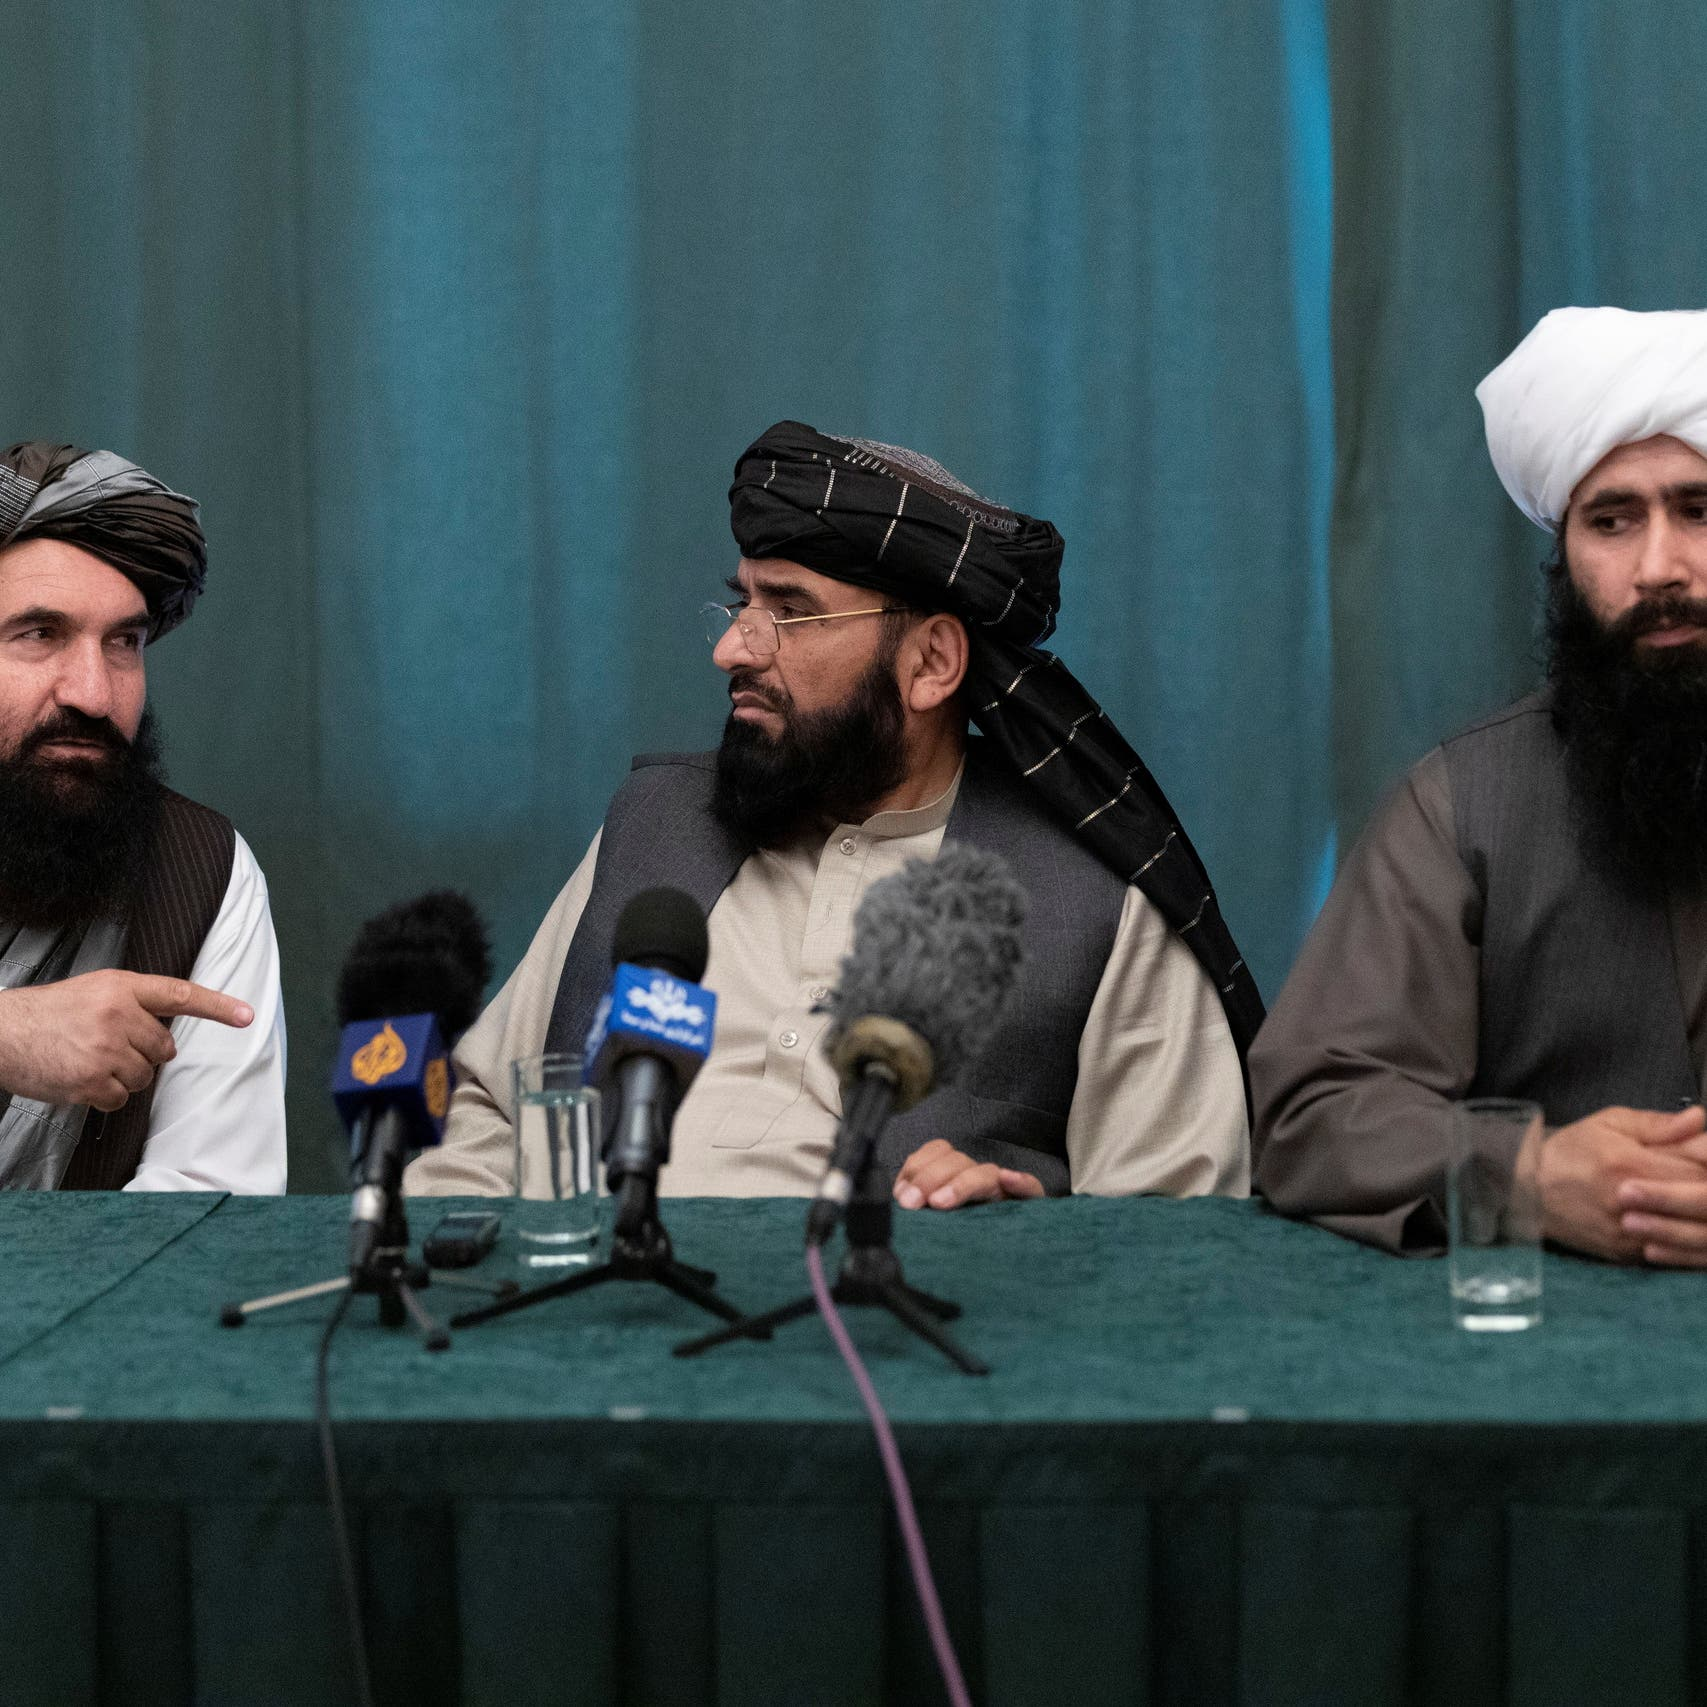 Taliban want 'peaceful' transition of power 'as soon as possible': Spokesman